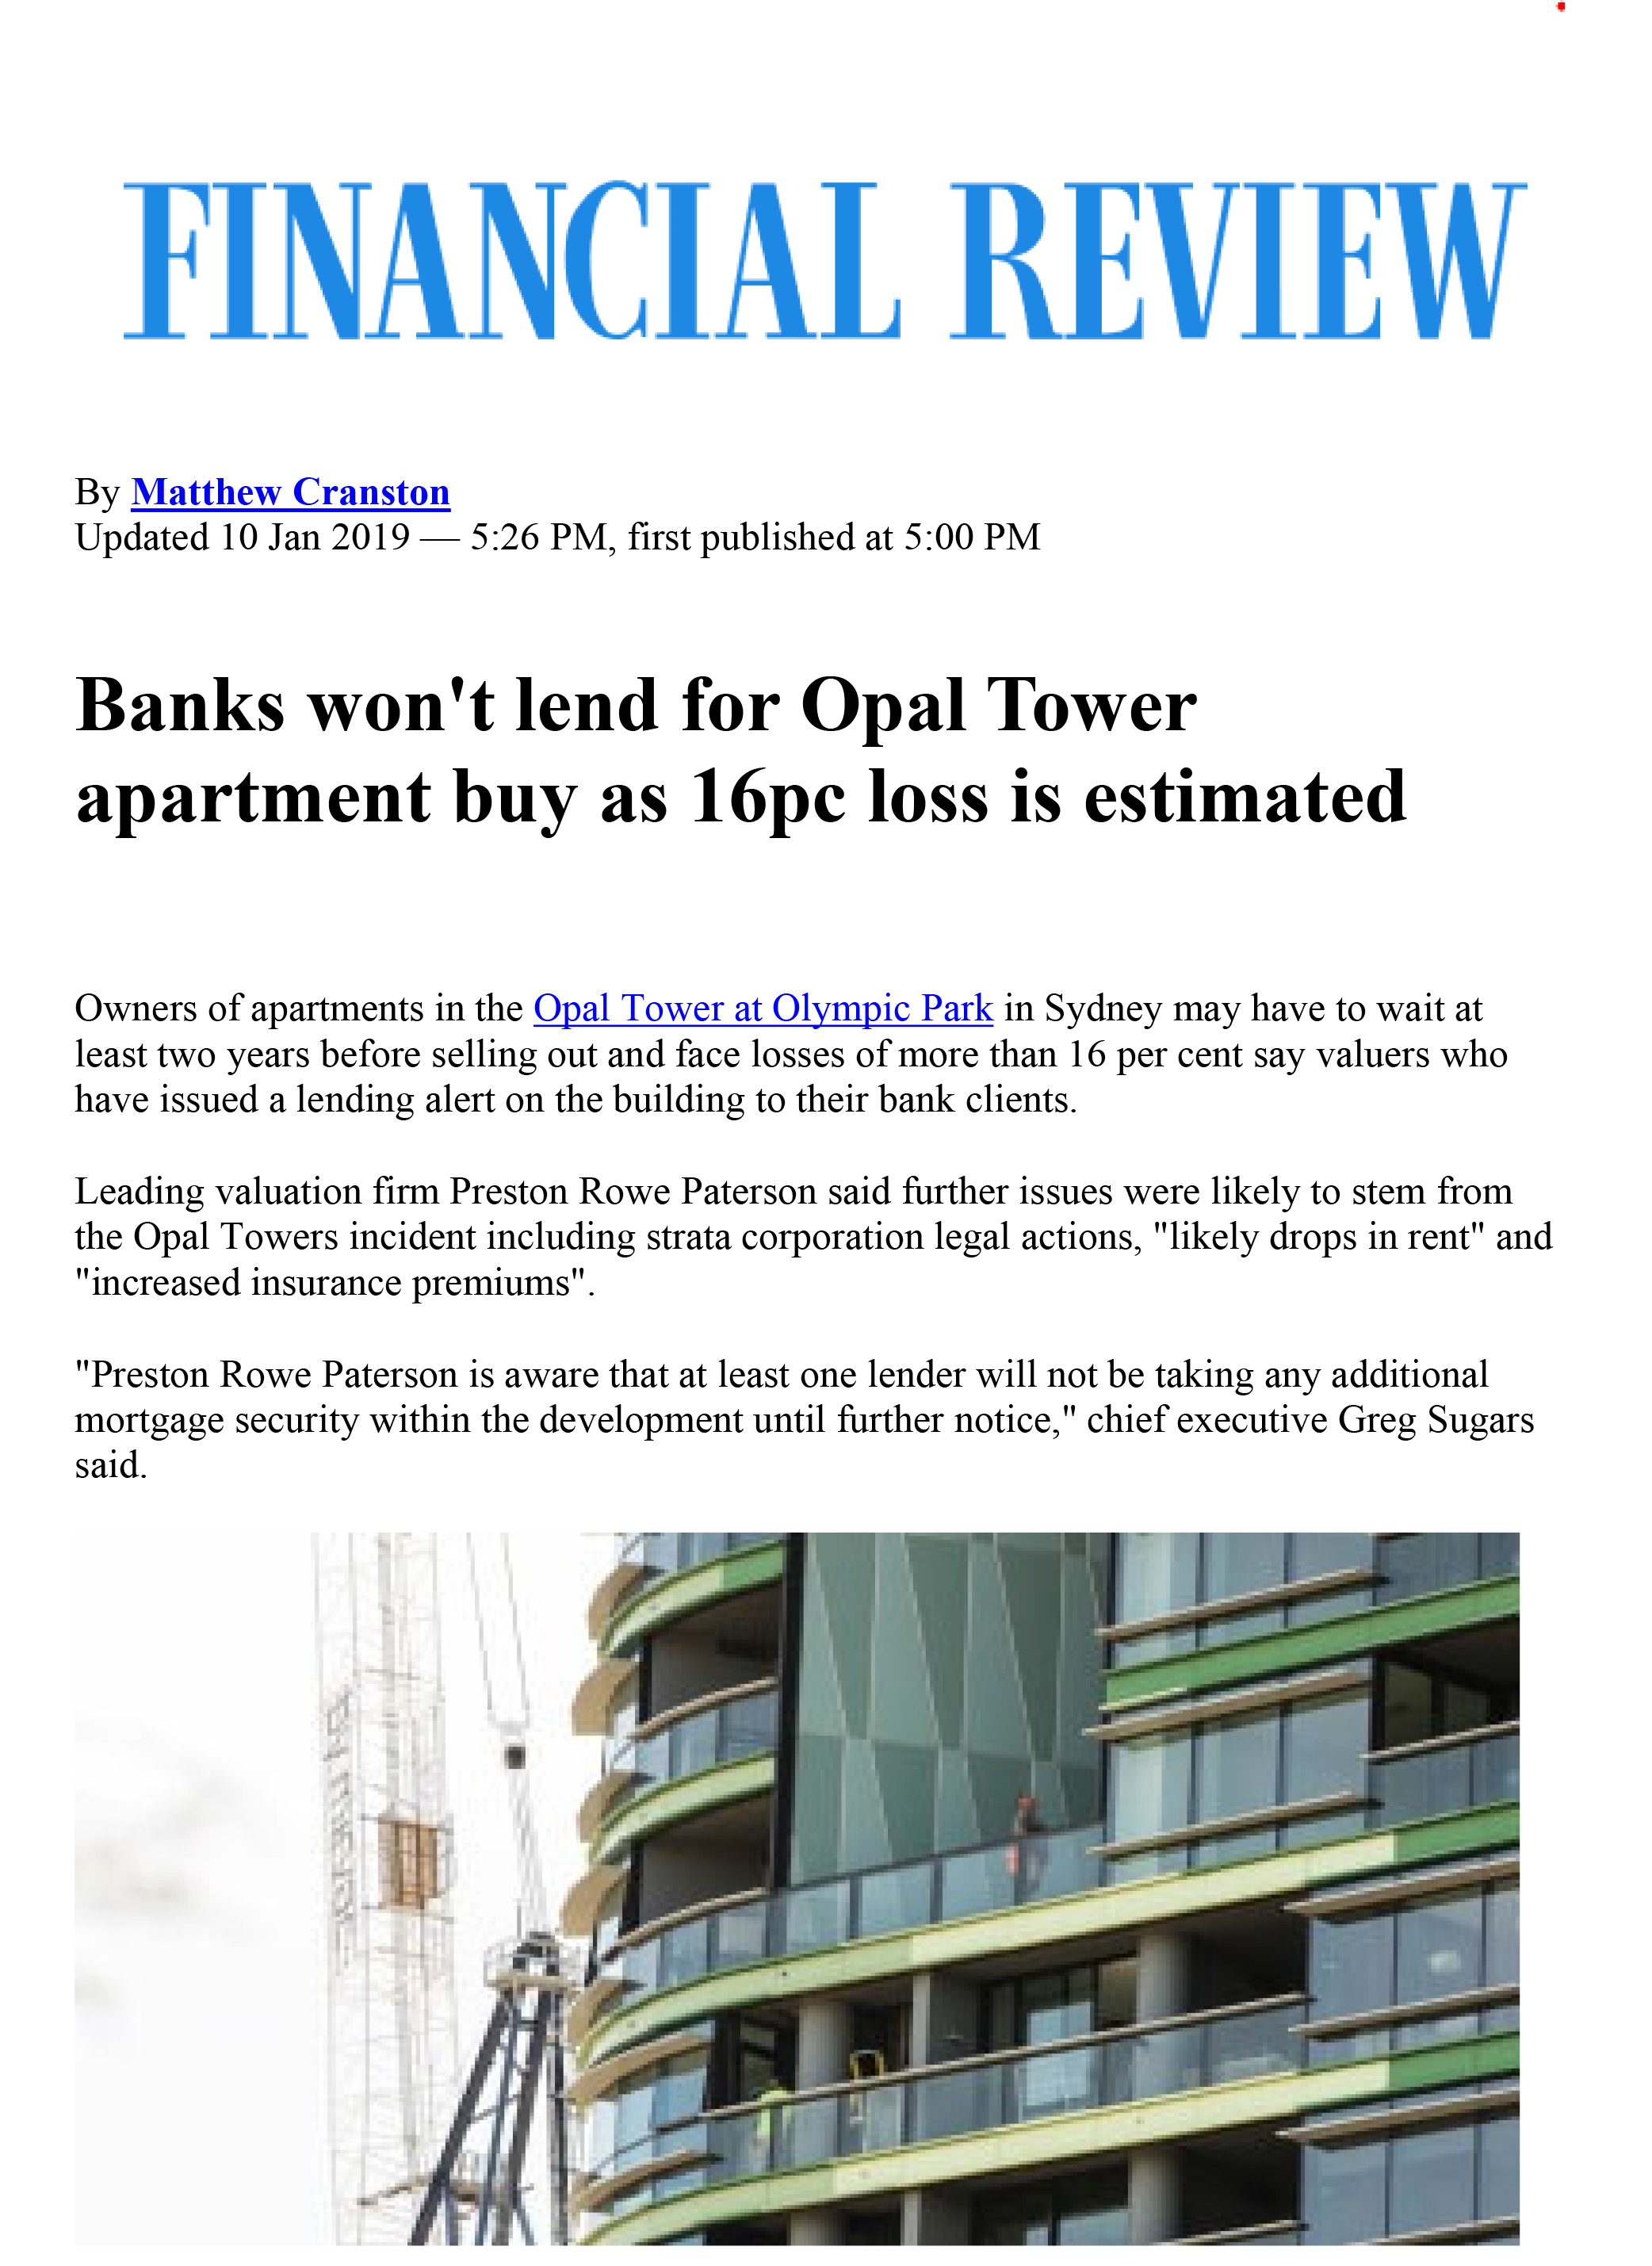 AFR-Article-11-JAN-2019-Banks-wont-lend-for-Opal-Tower-apartment-buy-as-16pc-loss-is-estimated.